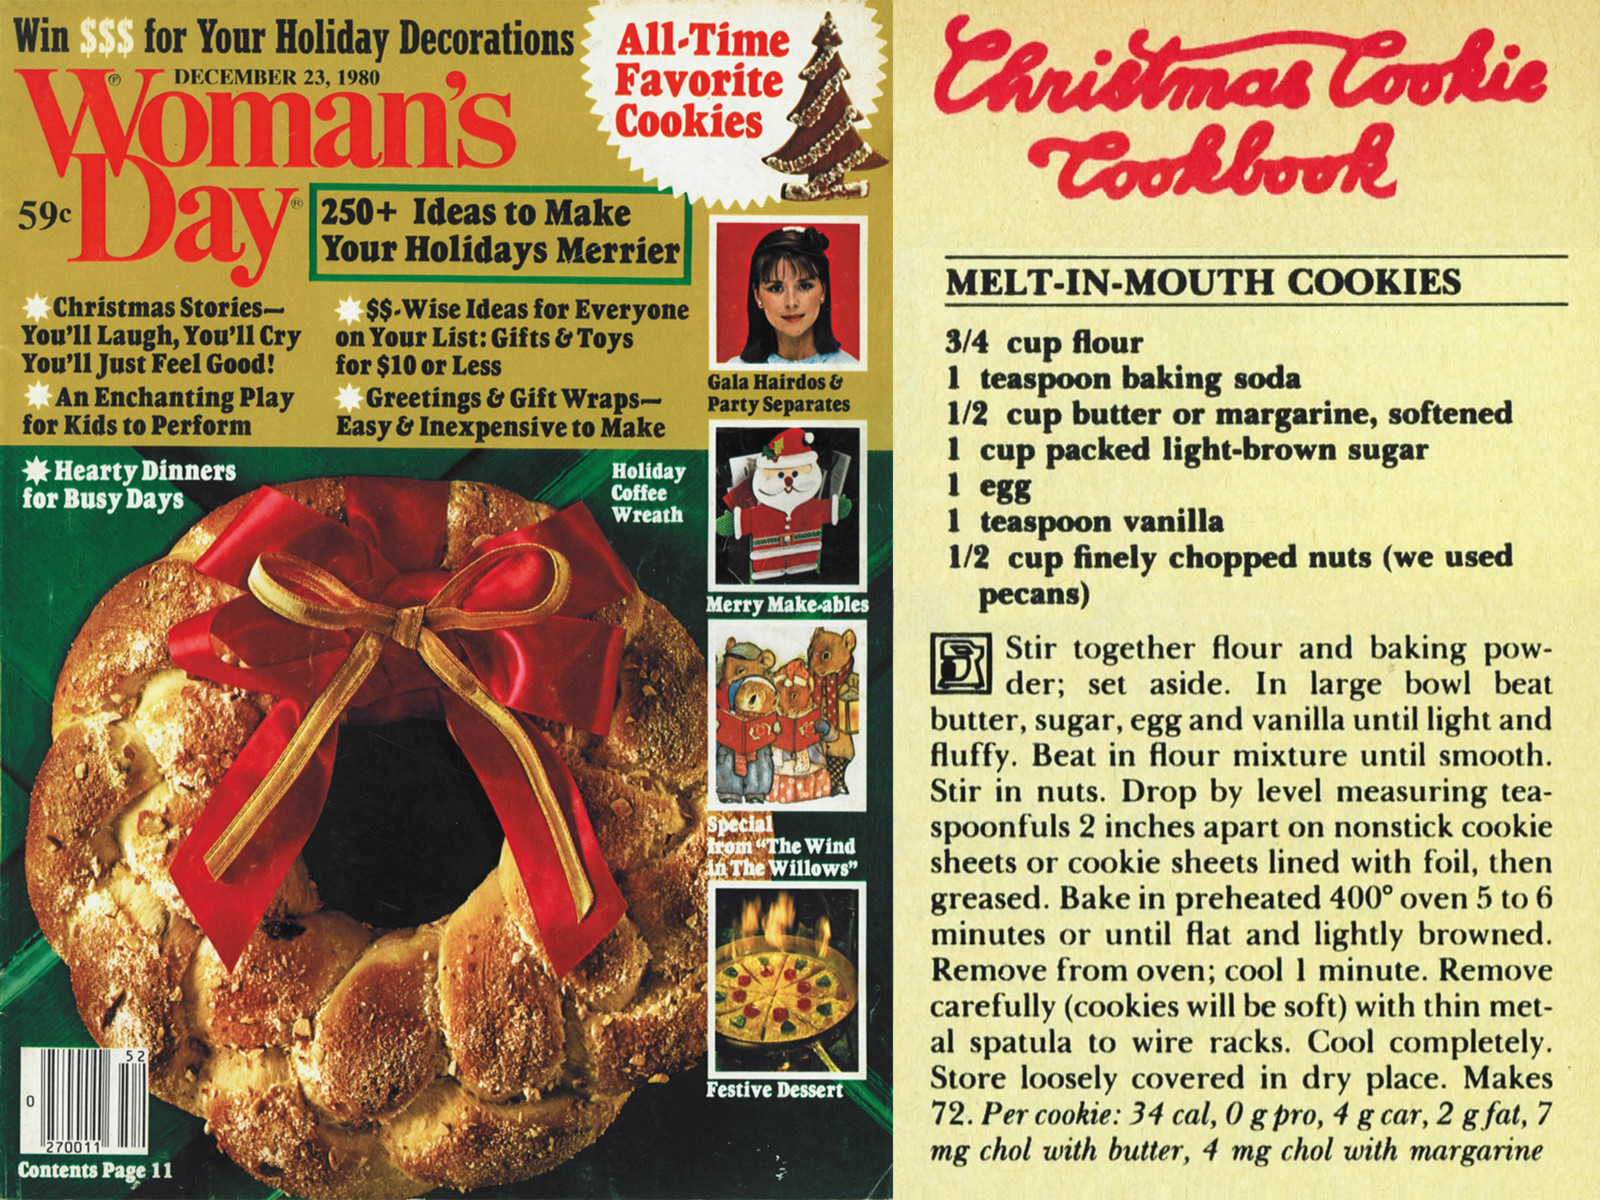 Cover of December 1980 Woman's Day with Melt-in-Mouth Cookies recipe from pages 144 and 146